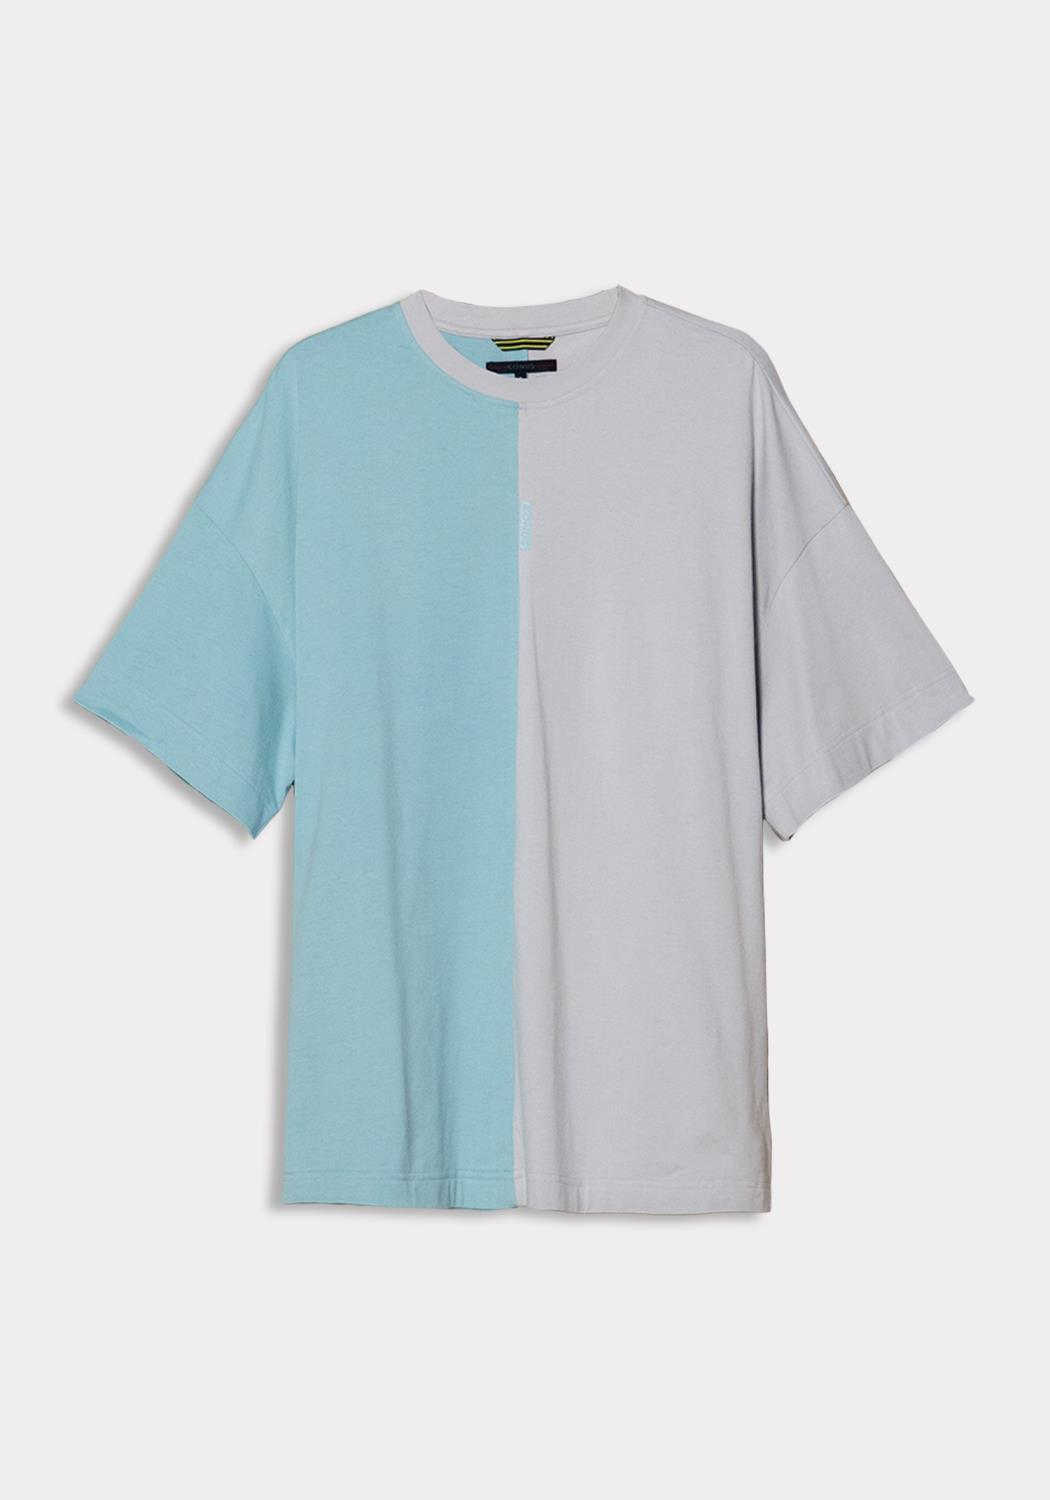 Konus Color Blocked Oversized Short Sleeve Tee  with Reflective Tape on Back